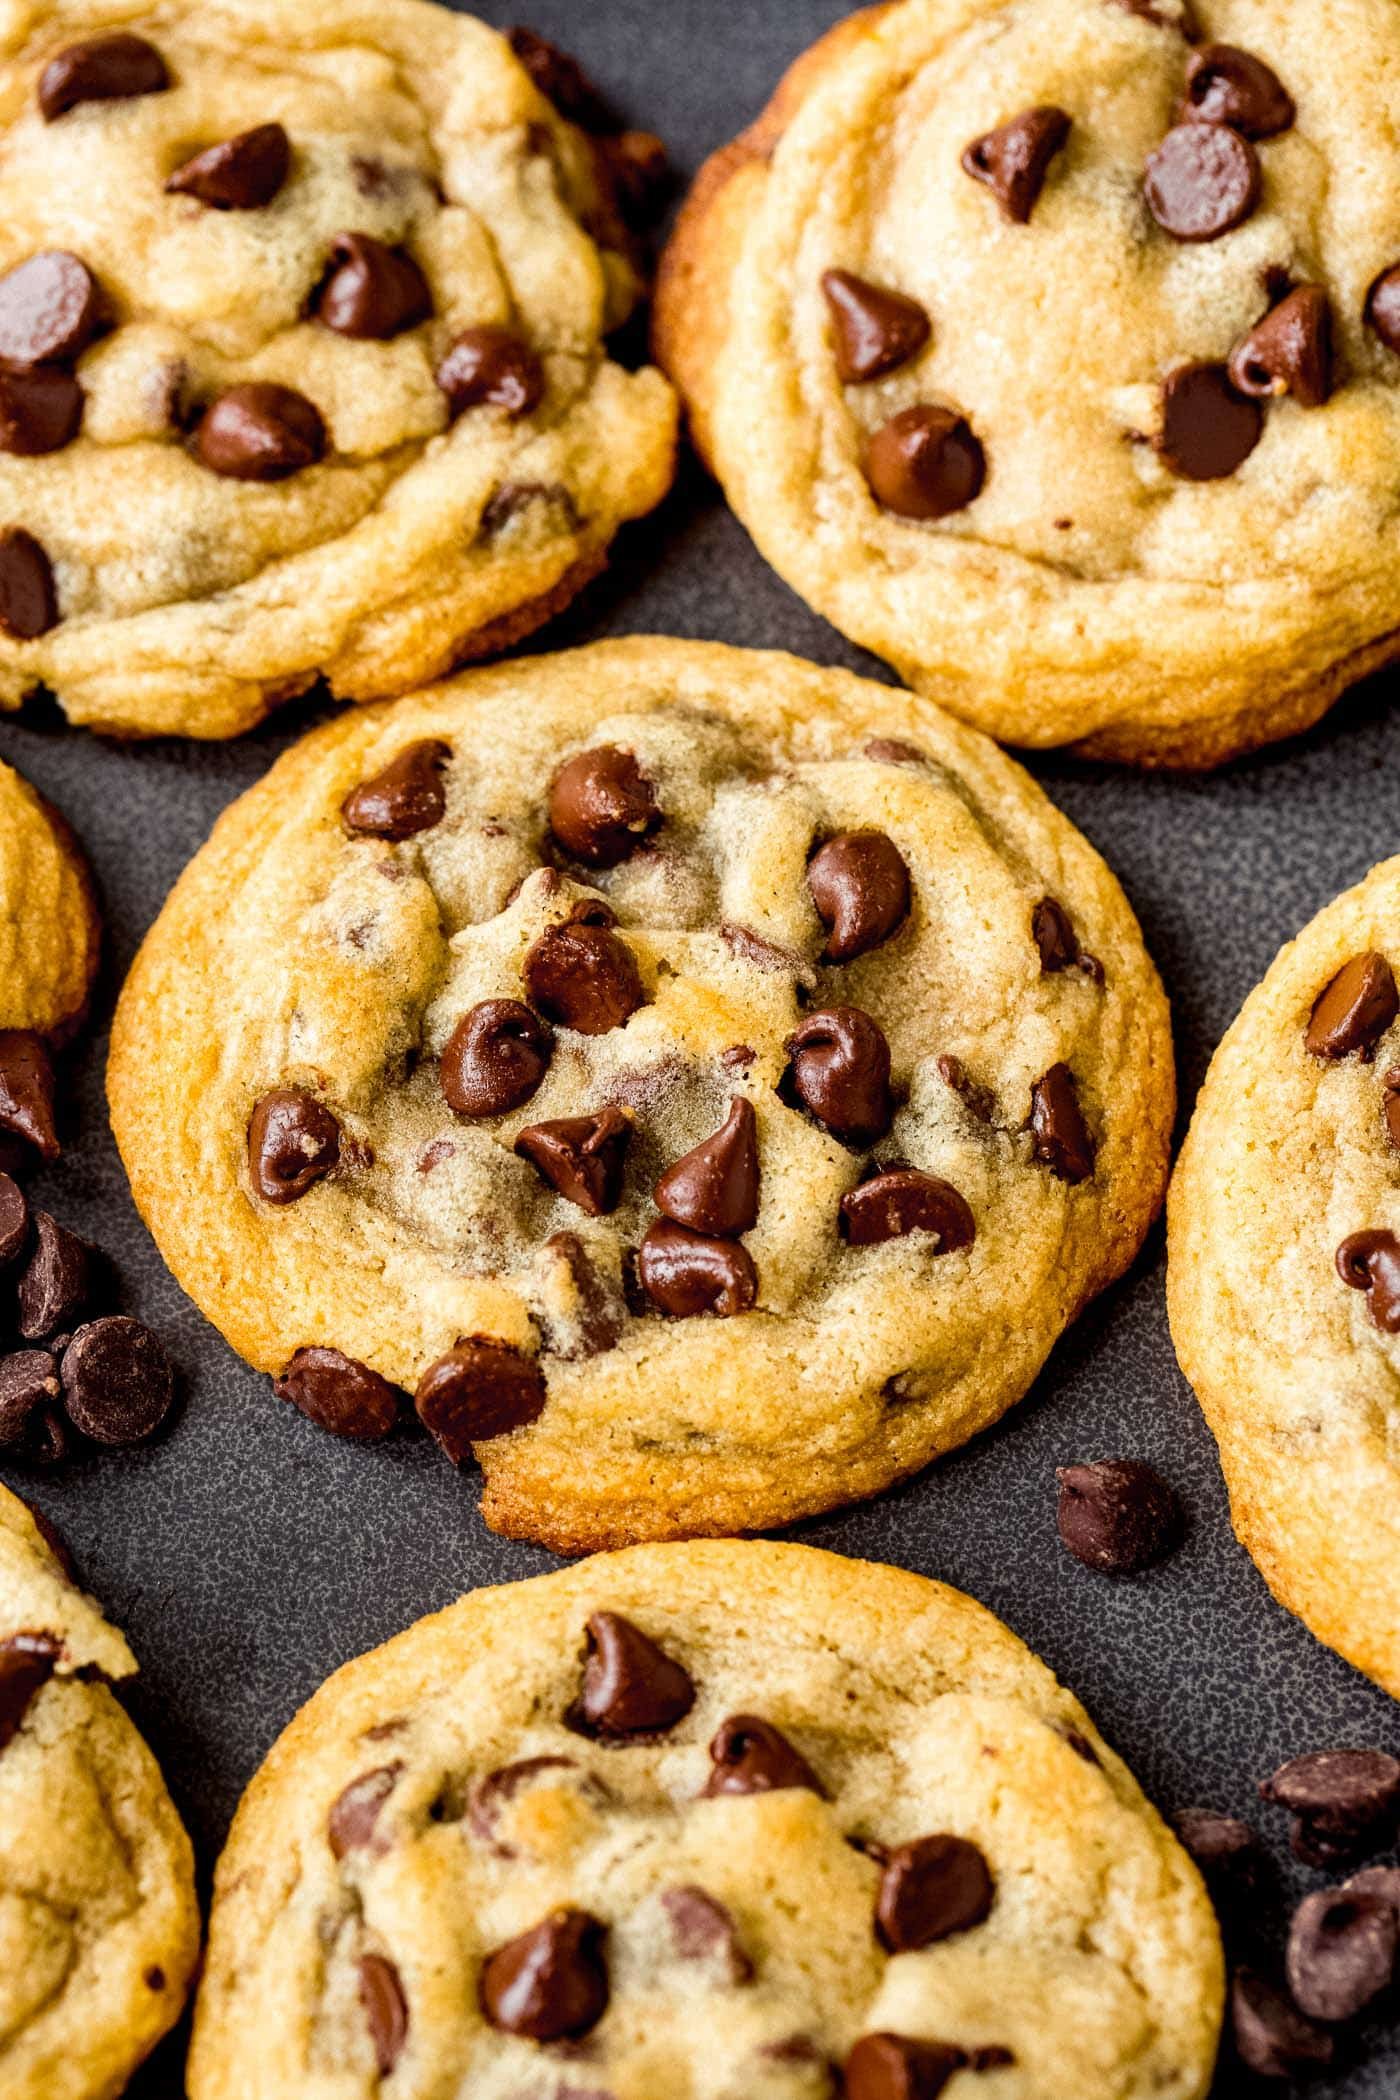 A baking pan with baked chocolate chip cookies. They are golden brown and are packed with chocolate chips.